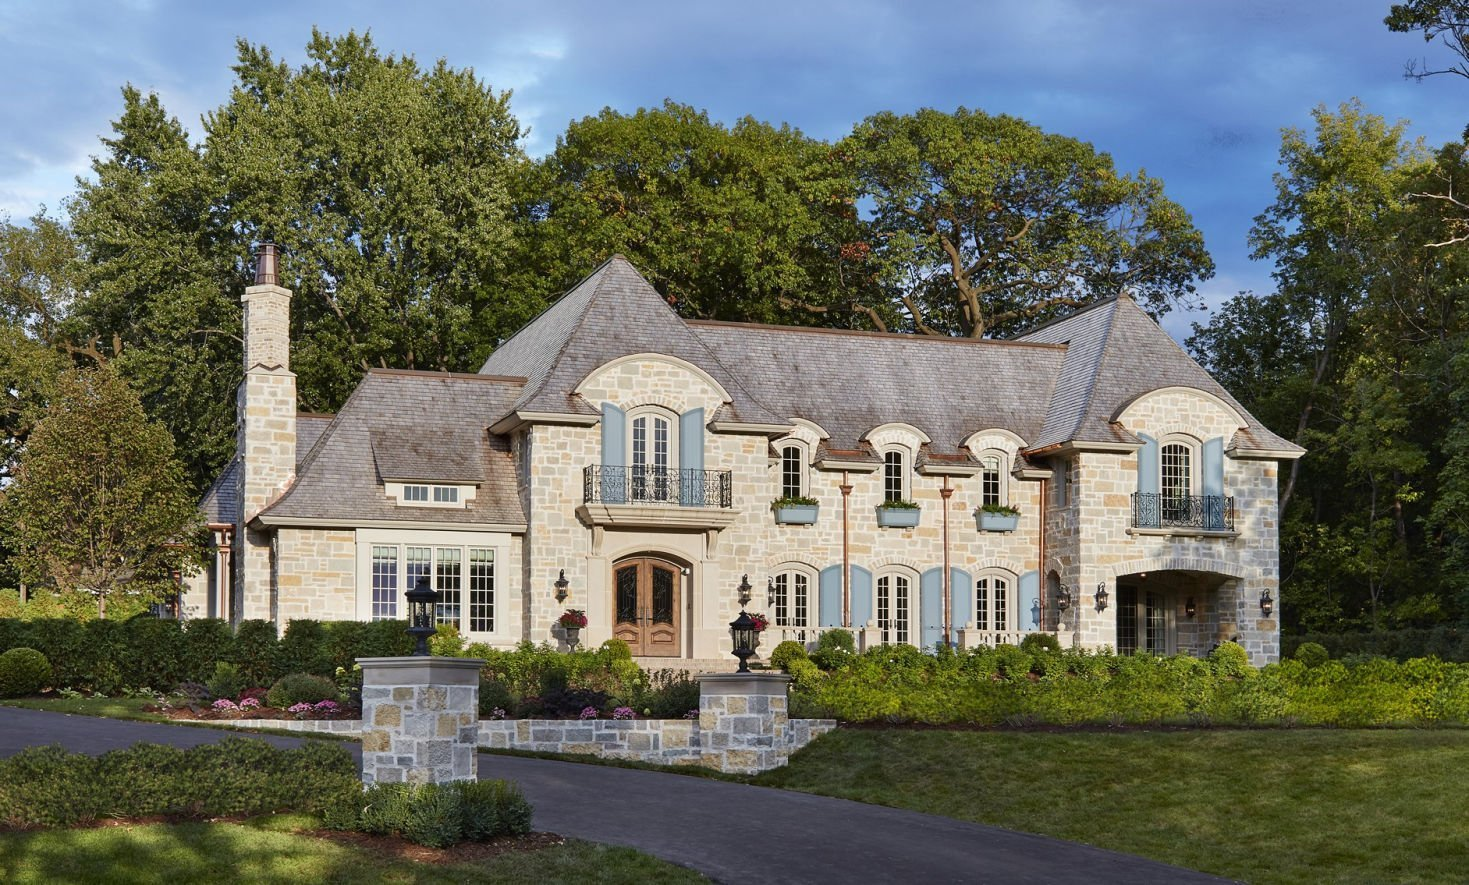 St. Paul French Country home architecture by Charlie & Co. Design